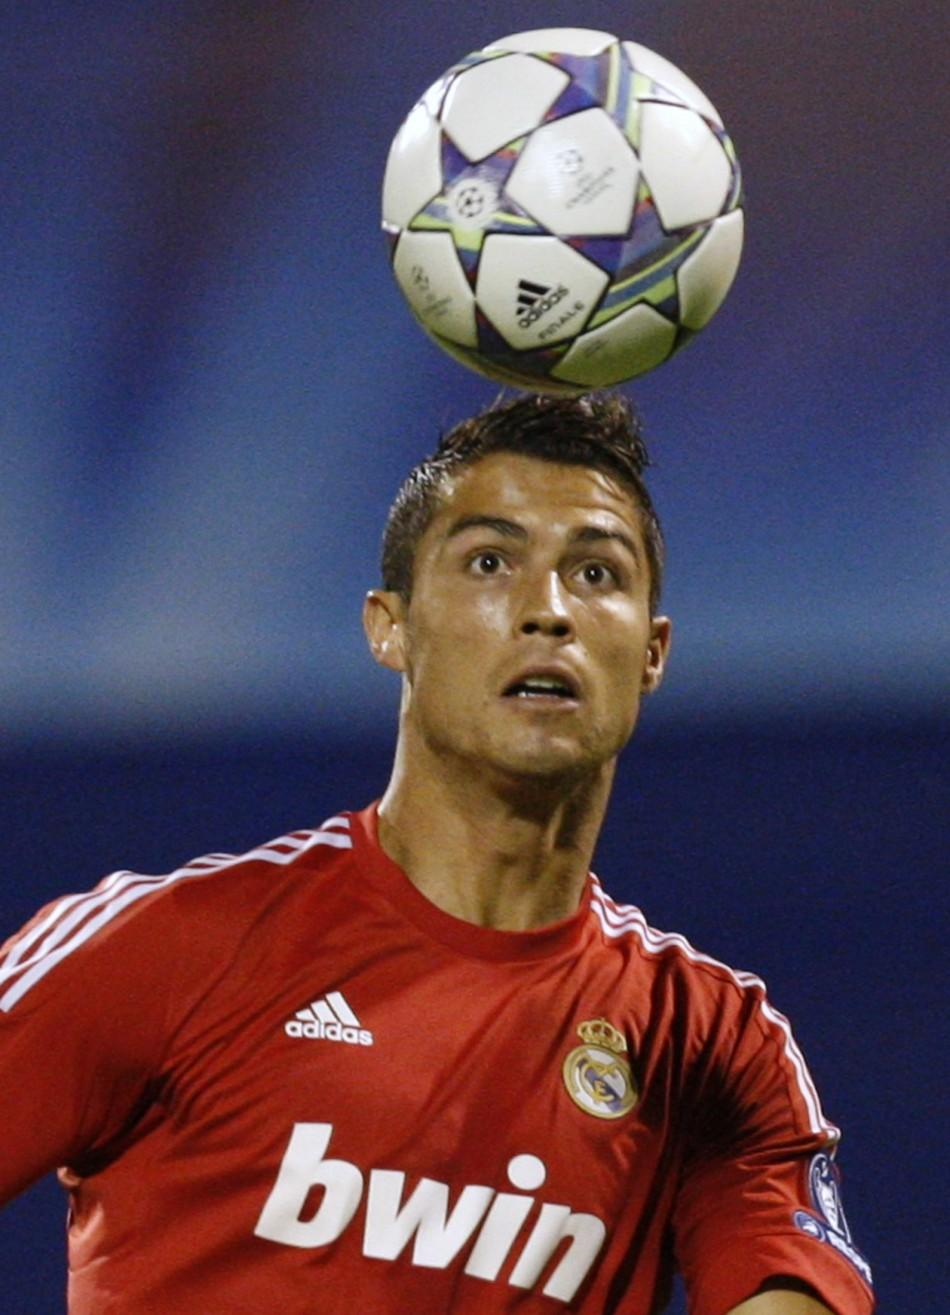 Cristiano Ronaldo: 'I am Rich, Handsome and a Great Player' [PHOTOS]